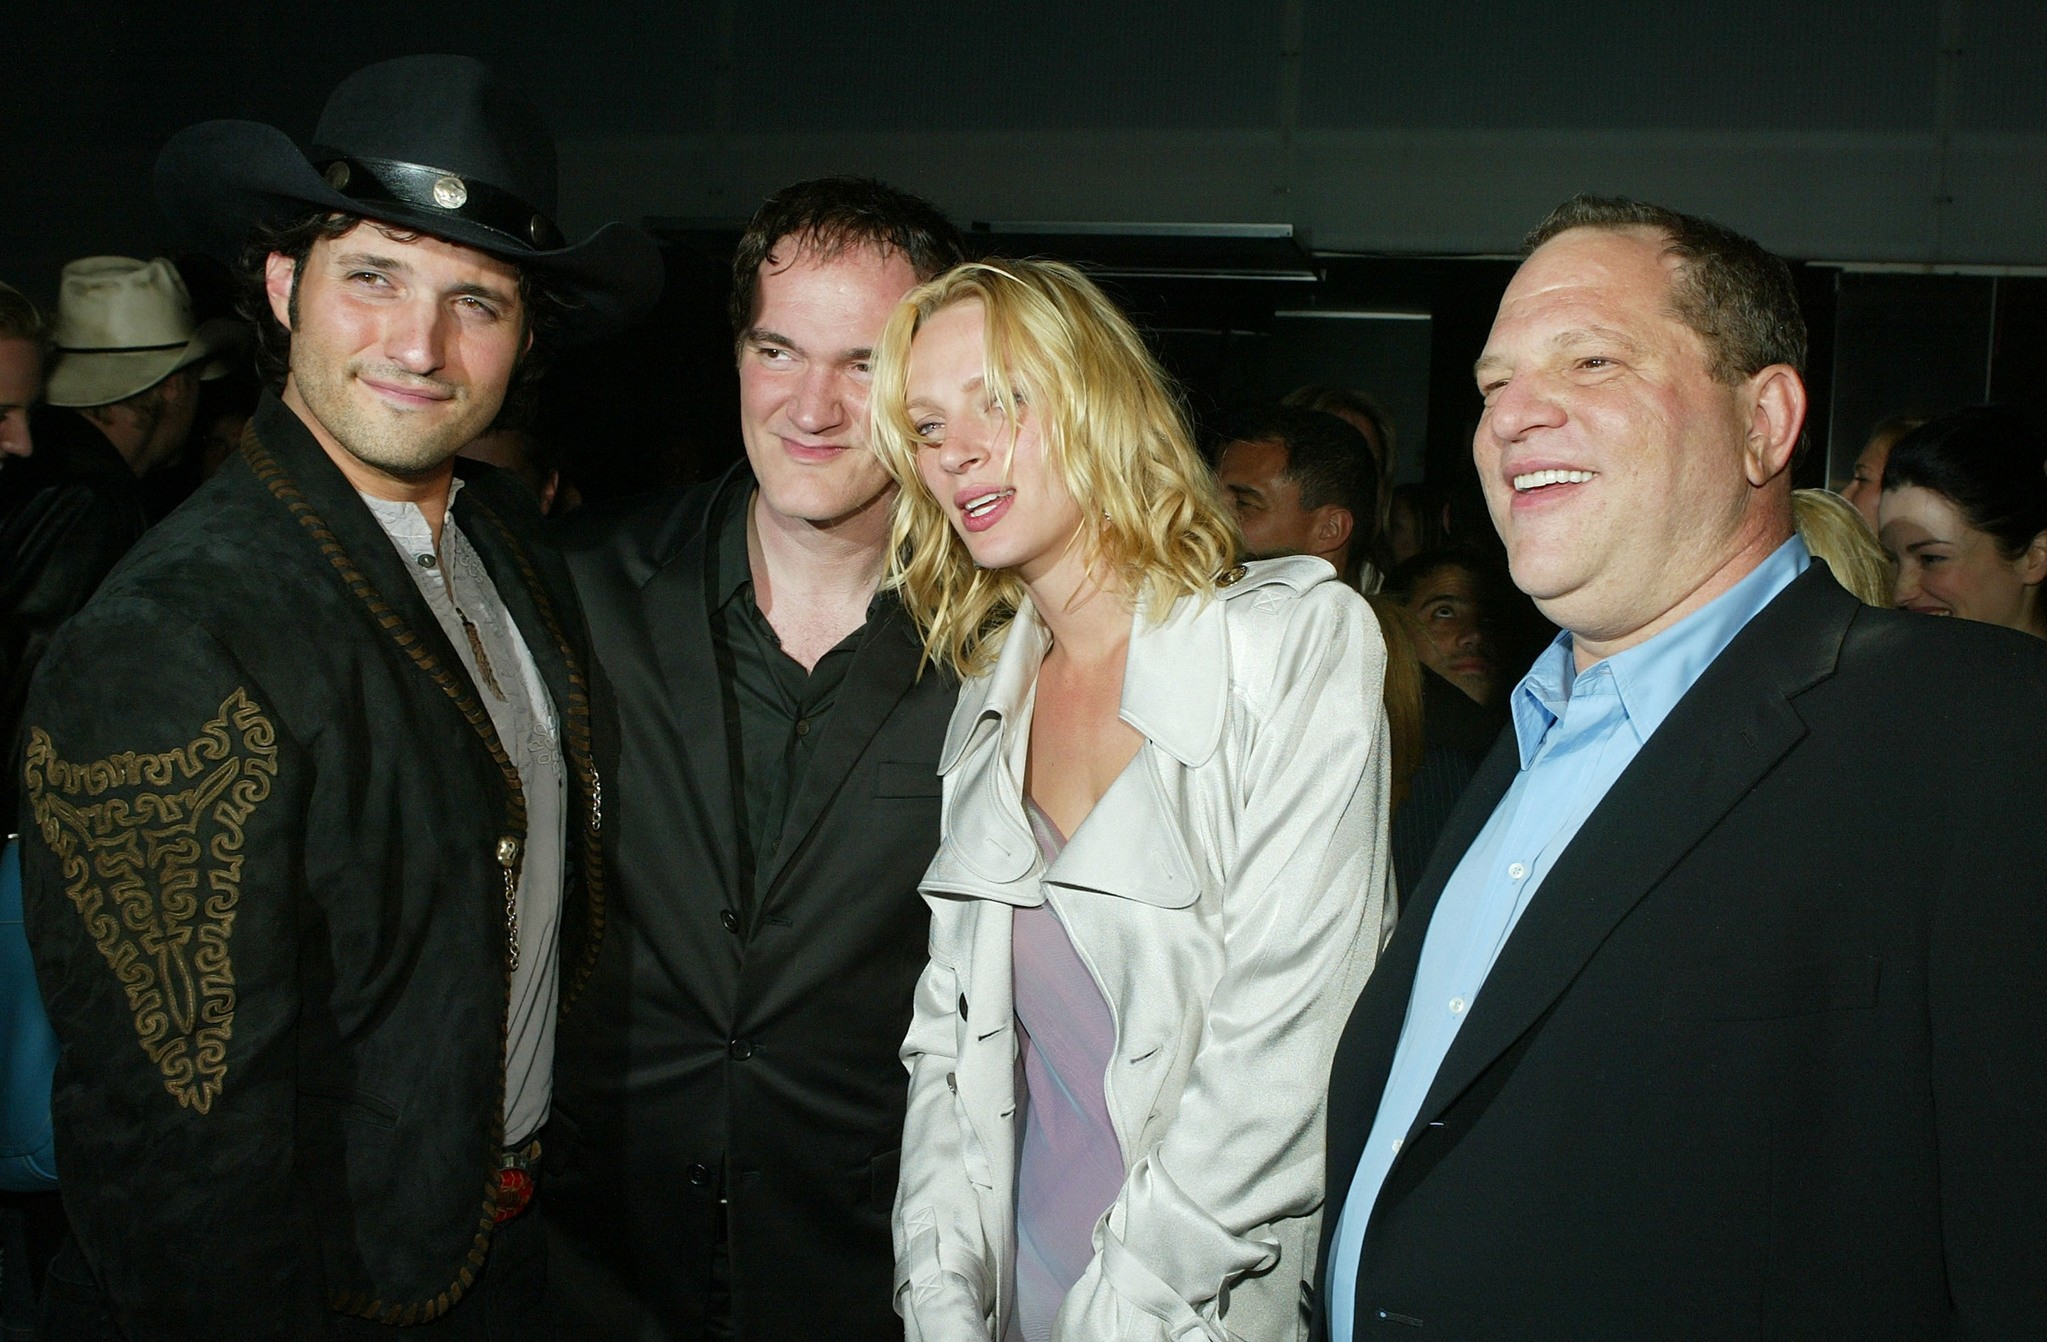 In this file photo taken on April 7, 2004 actress Uma Thurman and Miramaxs' Harvey Weinstein (R) talk at the after-party for Miramaxs' ,Kill Bill Vol. 2, at The Ivar in Los Angeles, California. (AFP Photo)